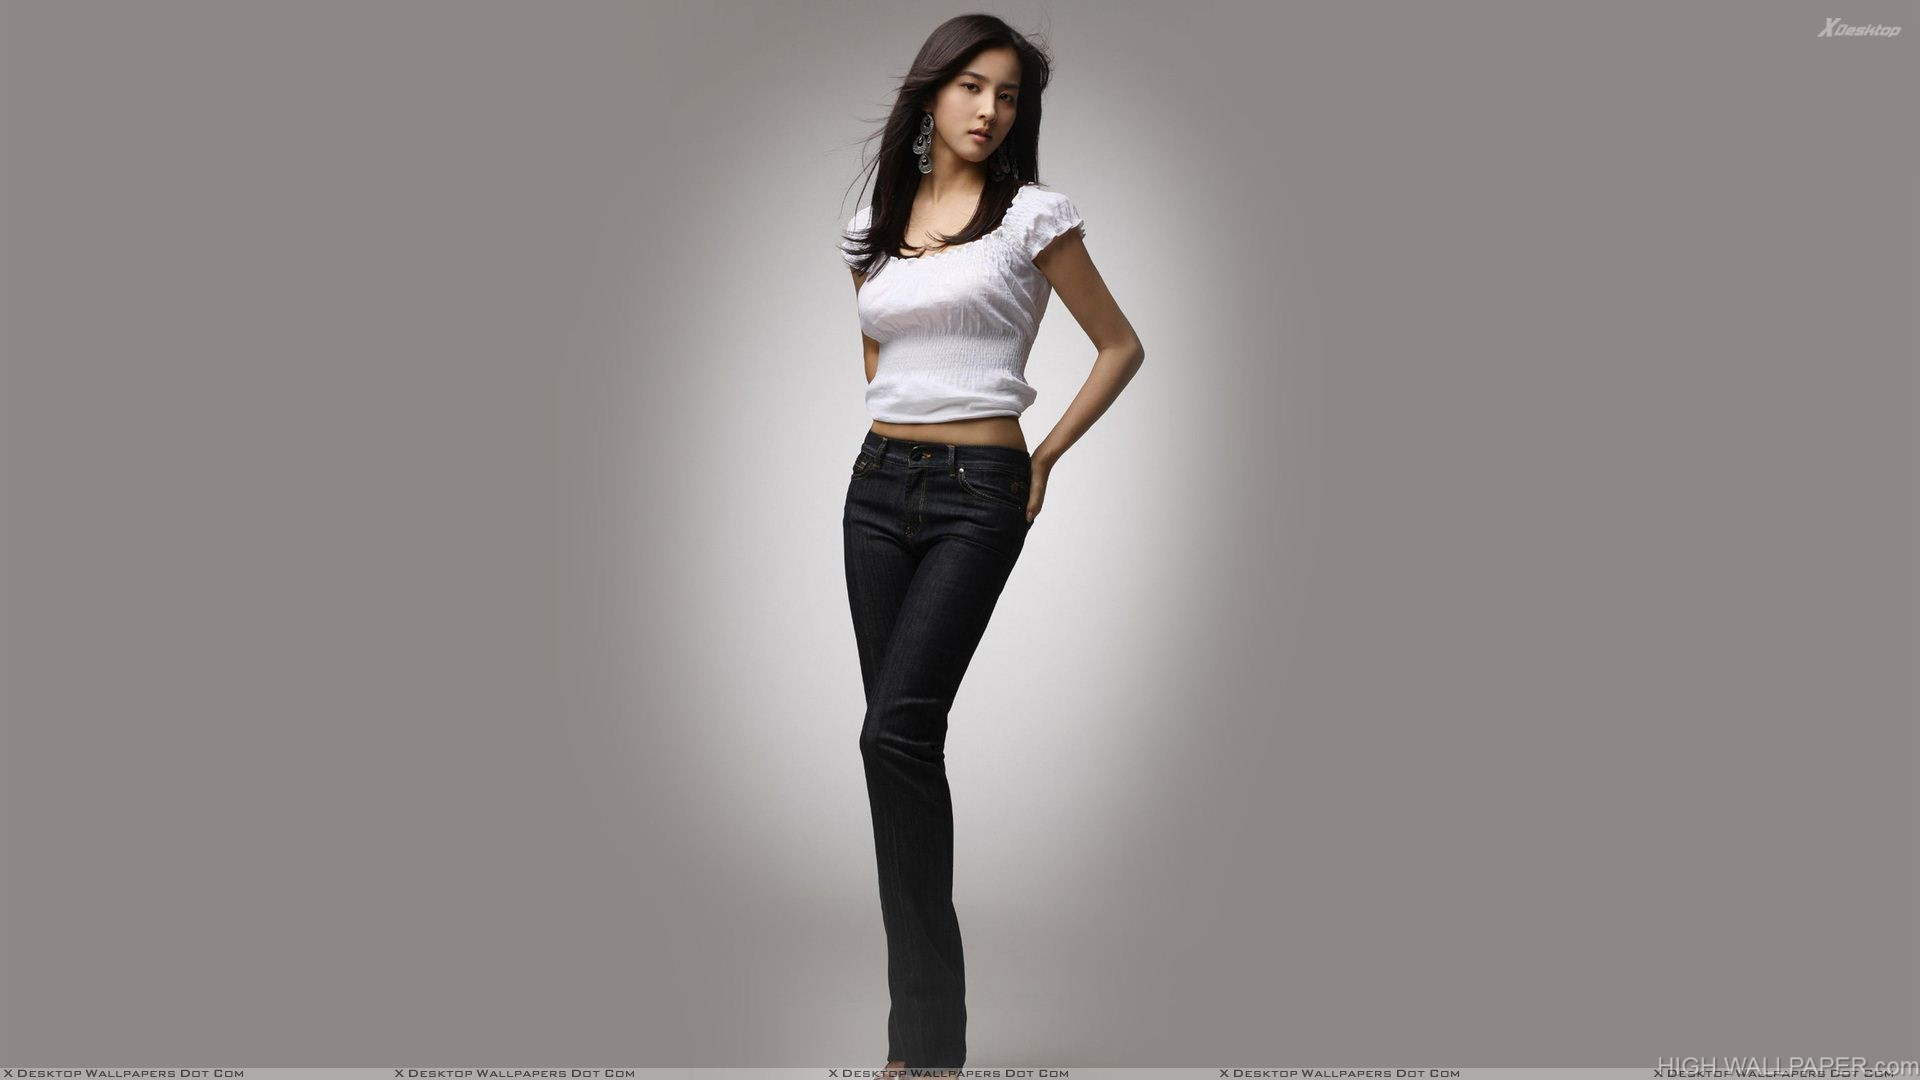 Han Hye jin In White Top N Black Jeans Modeling Pose Photoshoot